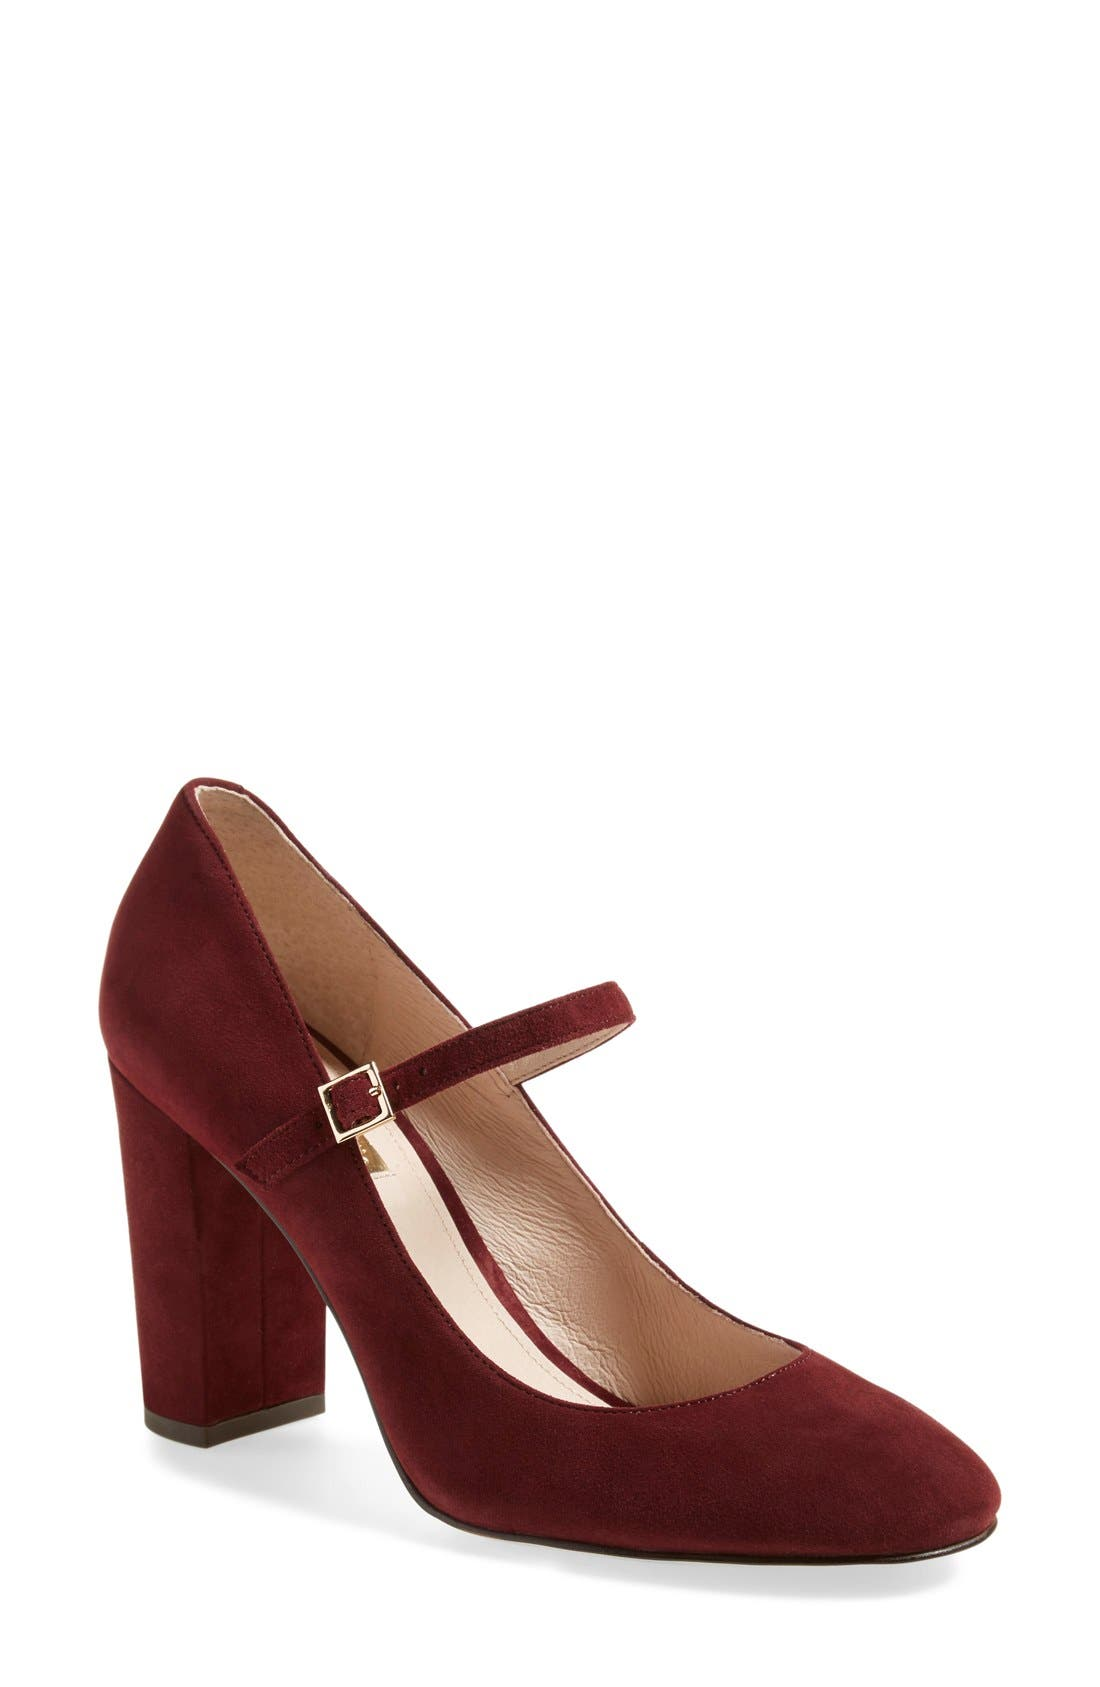 Main Image - Louise et Cie 'Jayde' Mary Jane Block Heel Pump (Women) (Nordstrom Exclusive)